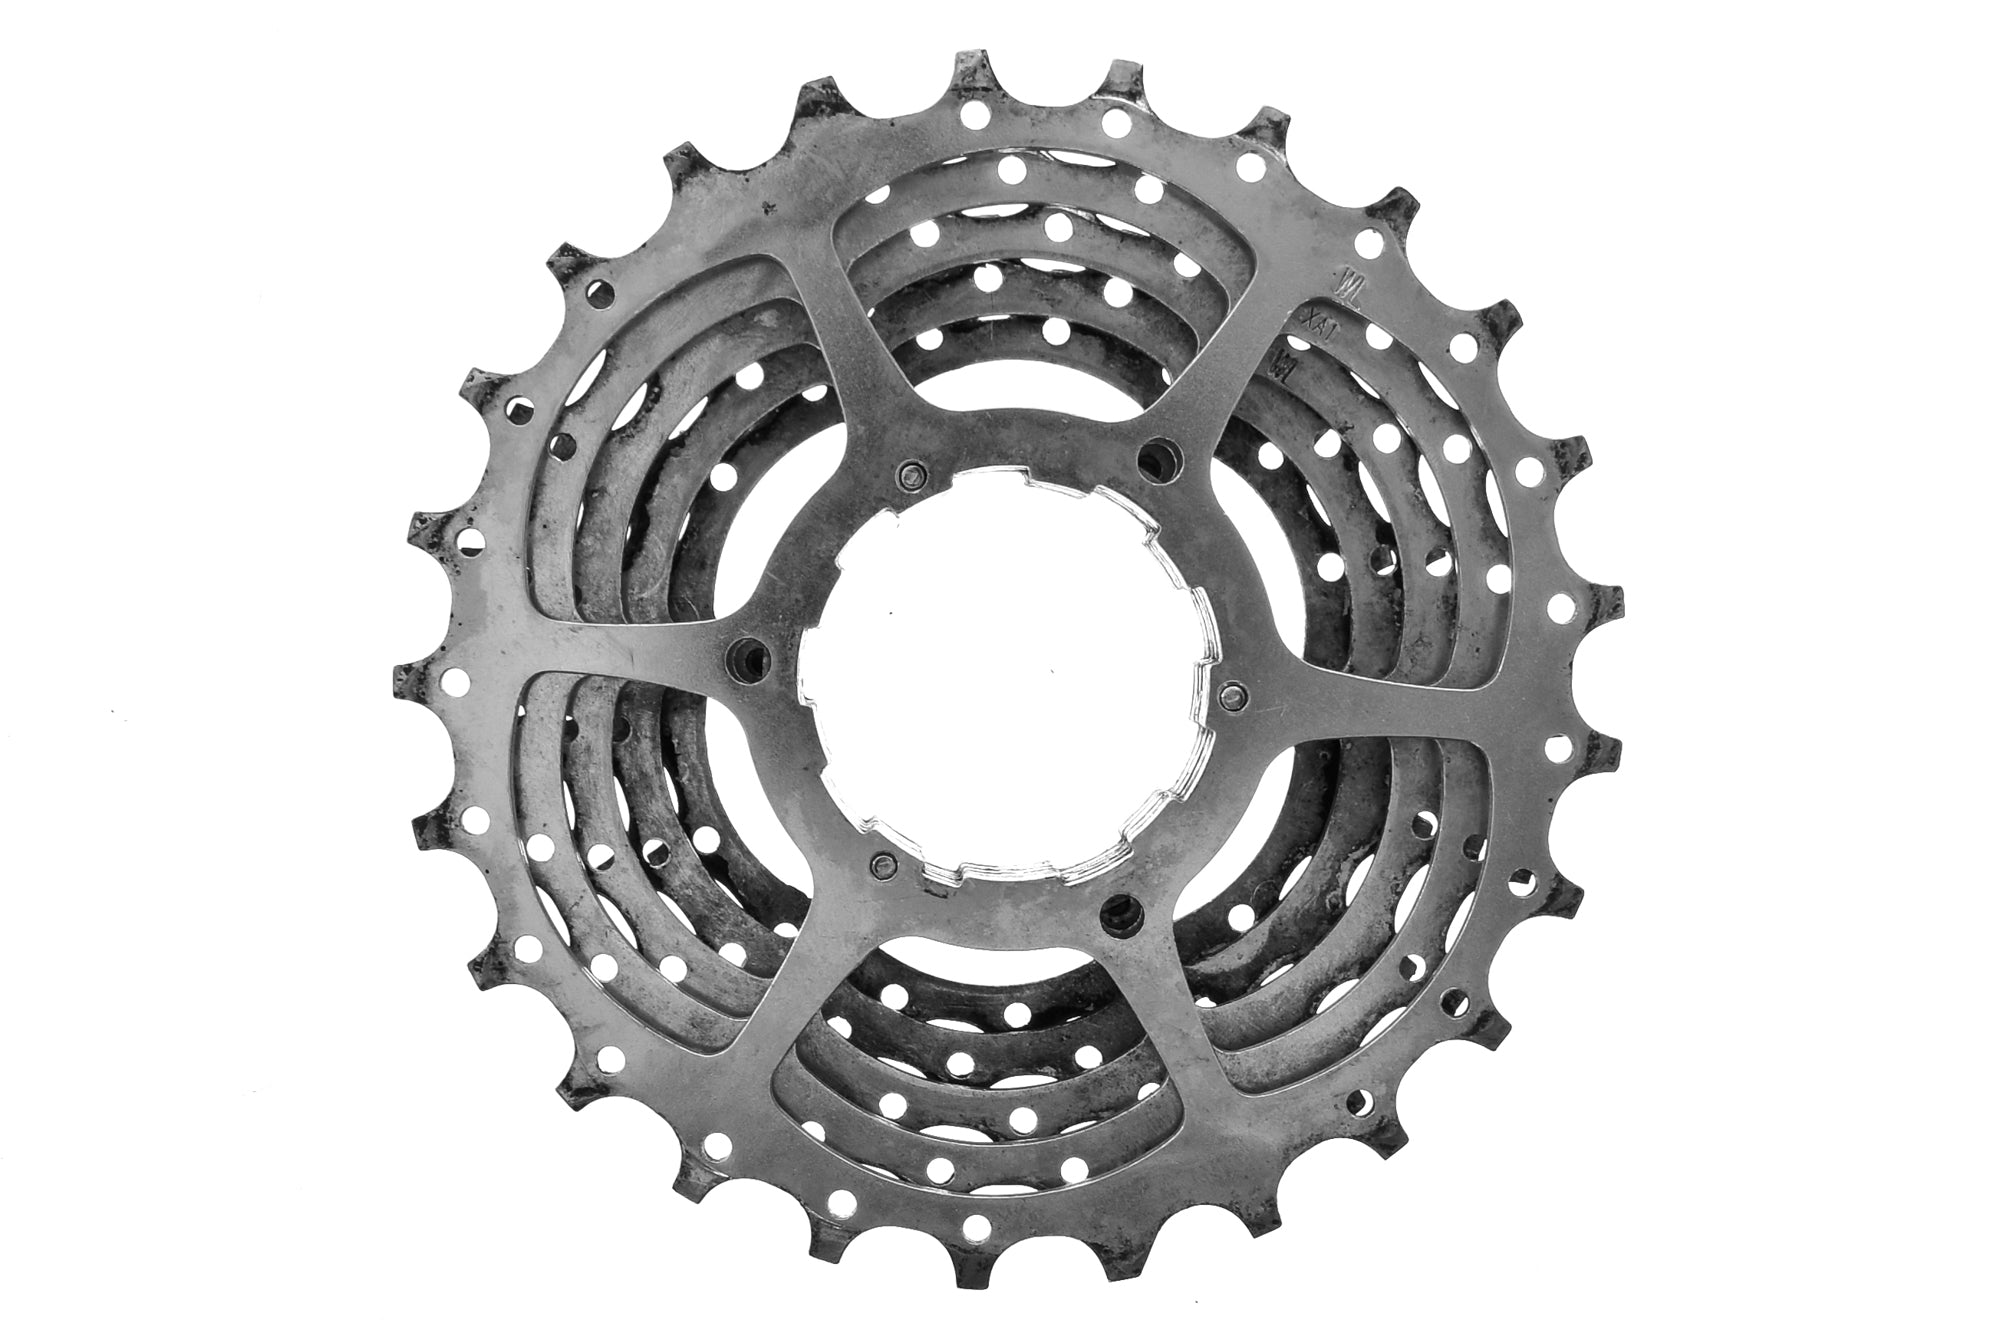 Shimano HG-70-9 Cassette 12-25T 9 Speed Road Bike non-drive side